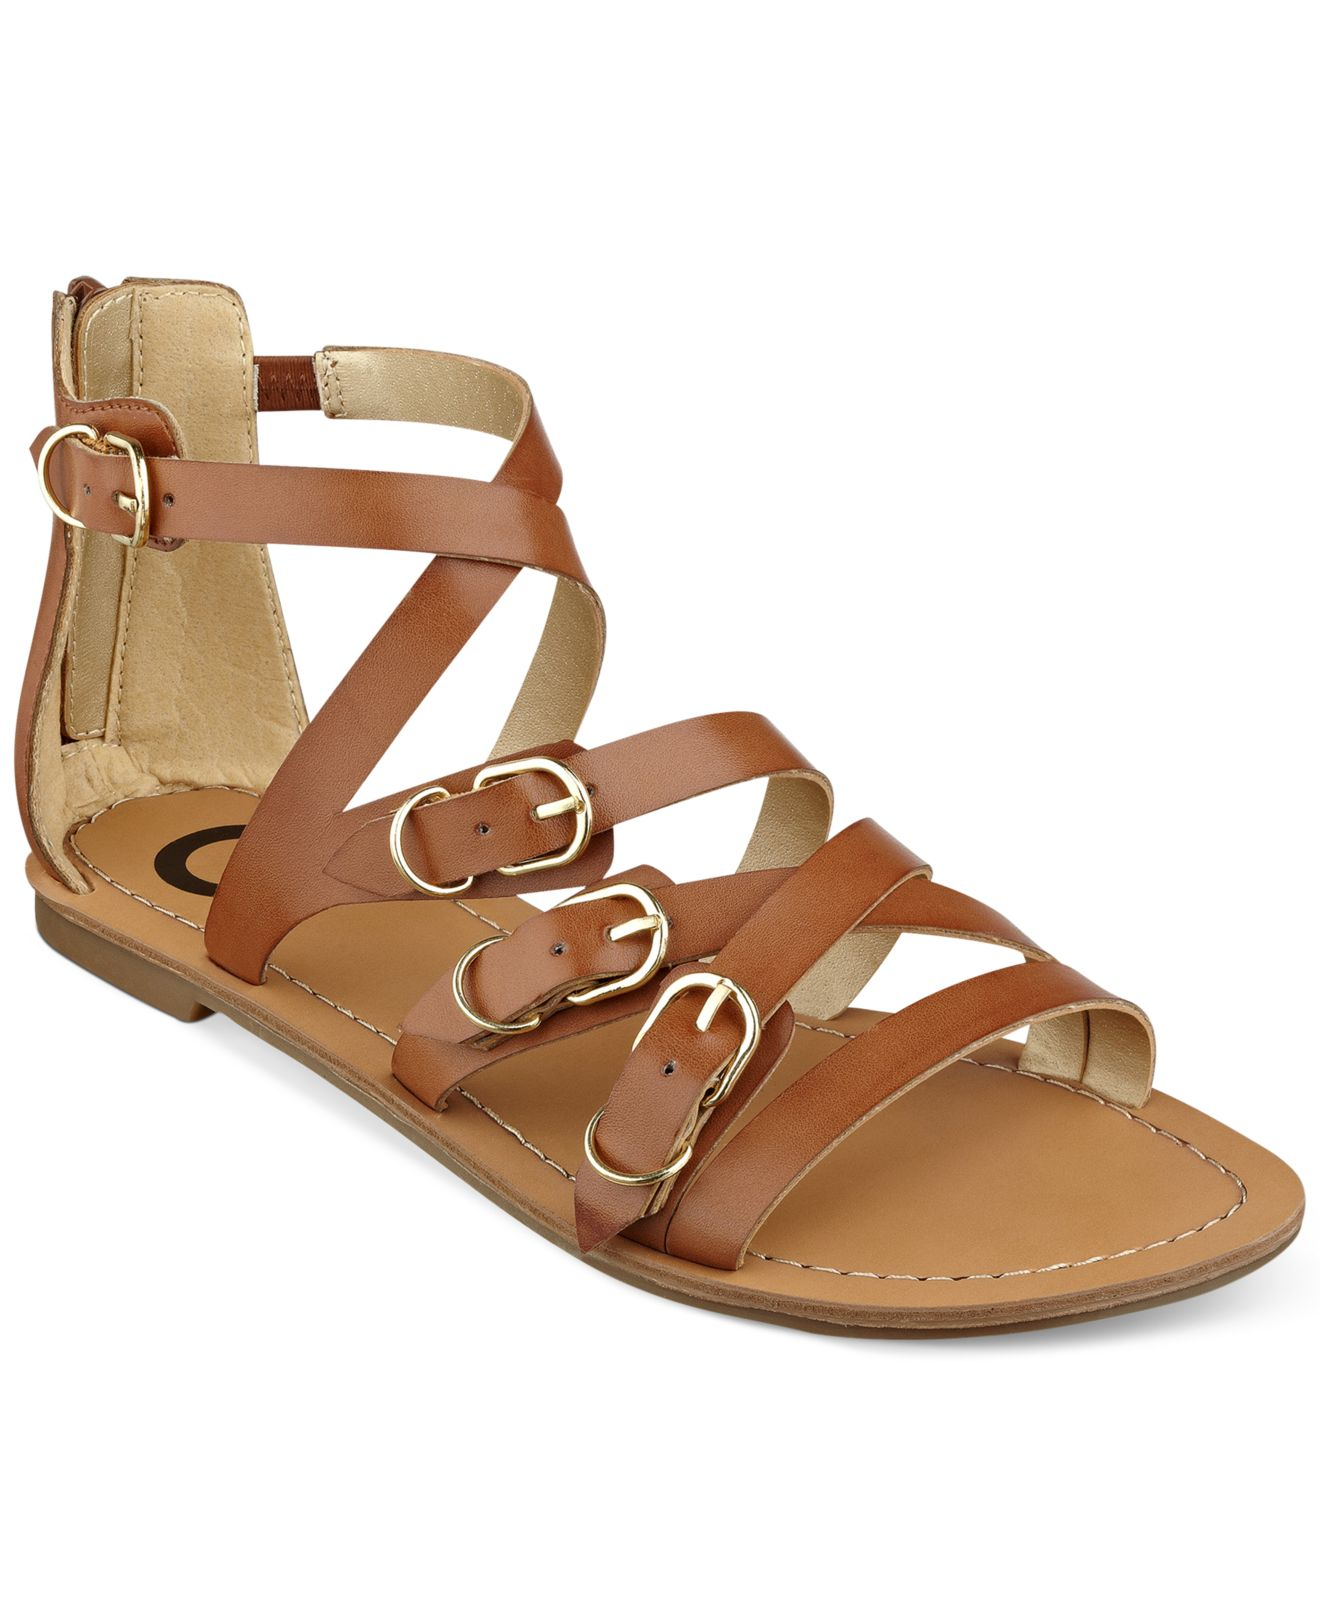 9daef1c11e69e Lyst - G by Guess Women S Harris Strappy Flat Sandals in Brown